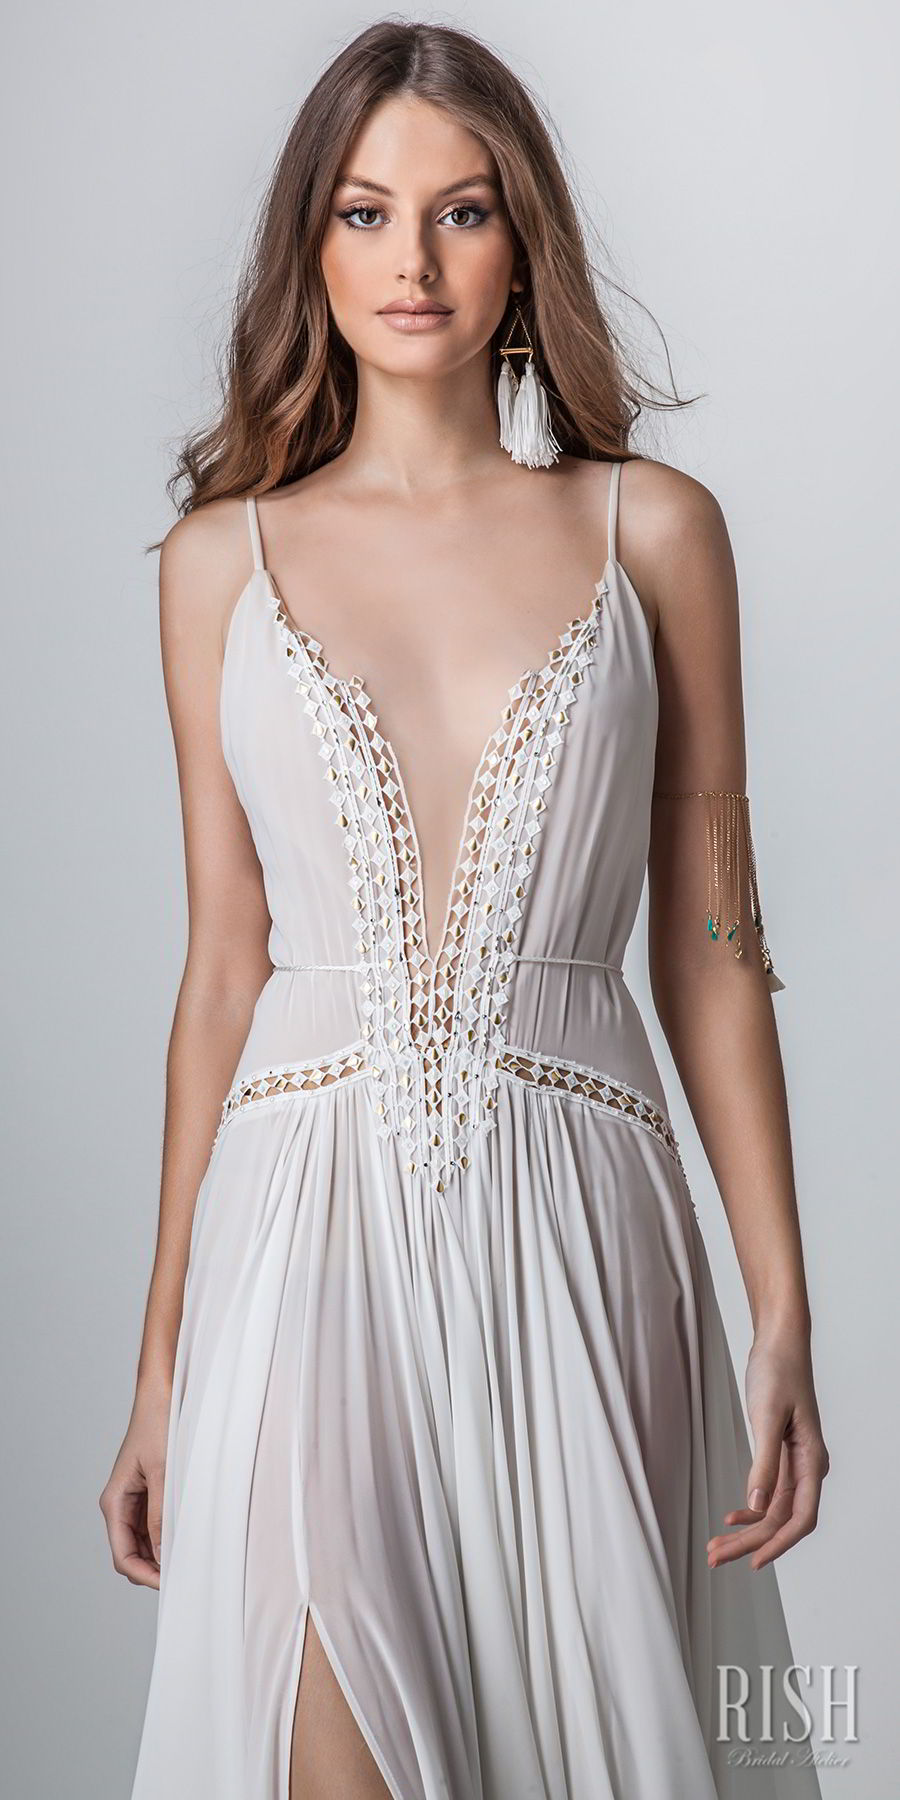 rish bridal sun dance 2018 sleeveless spaghetti strap deep plunging v neck lightly embellished bodice sexy bohemian soft a  line wedding dress open v back chapel train (helena) zv